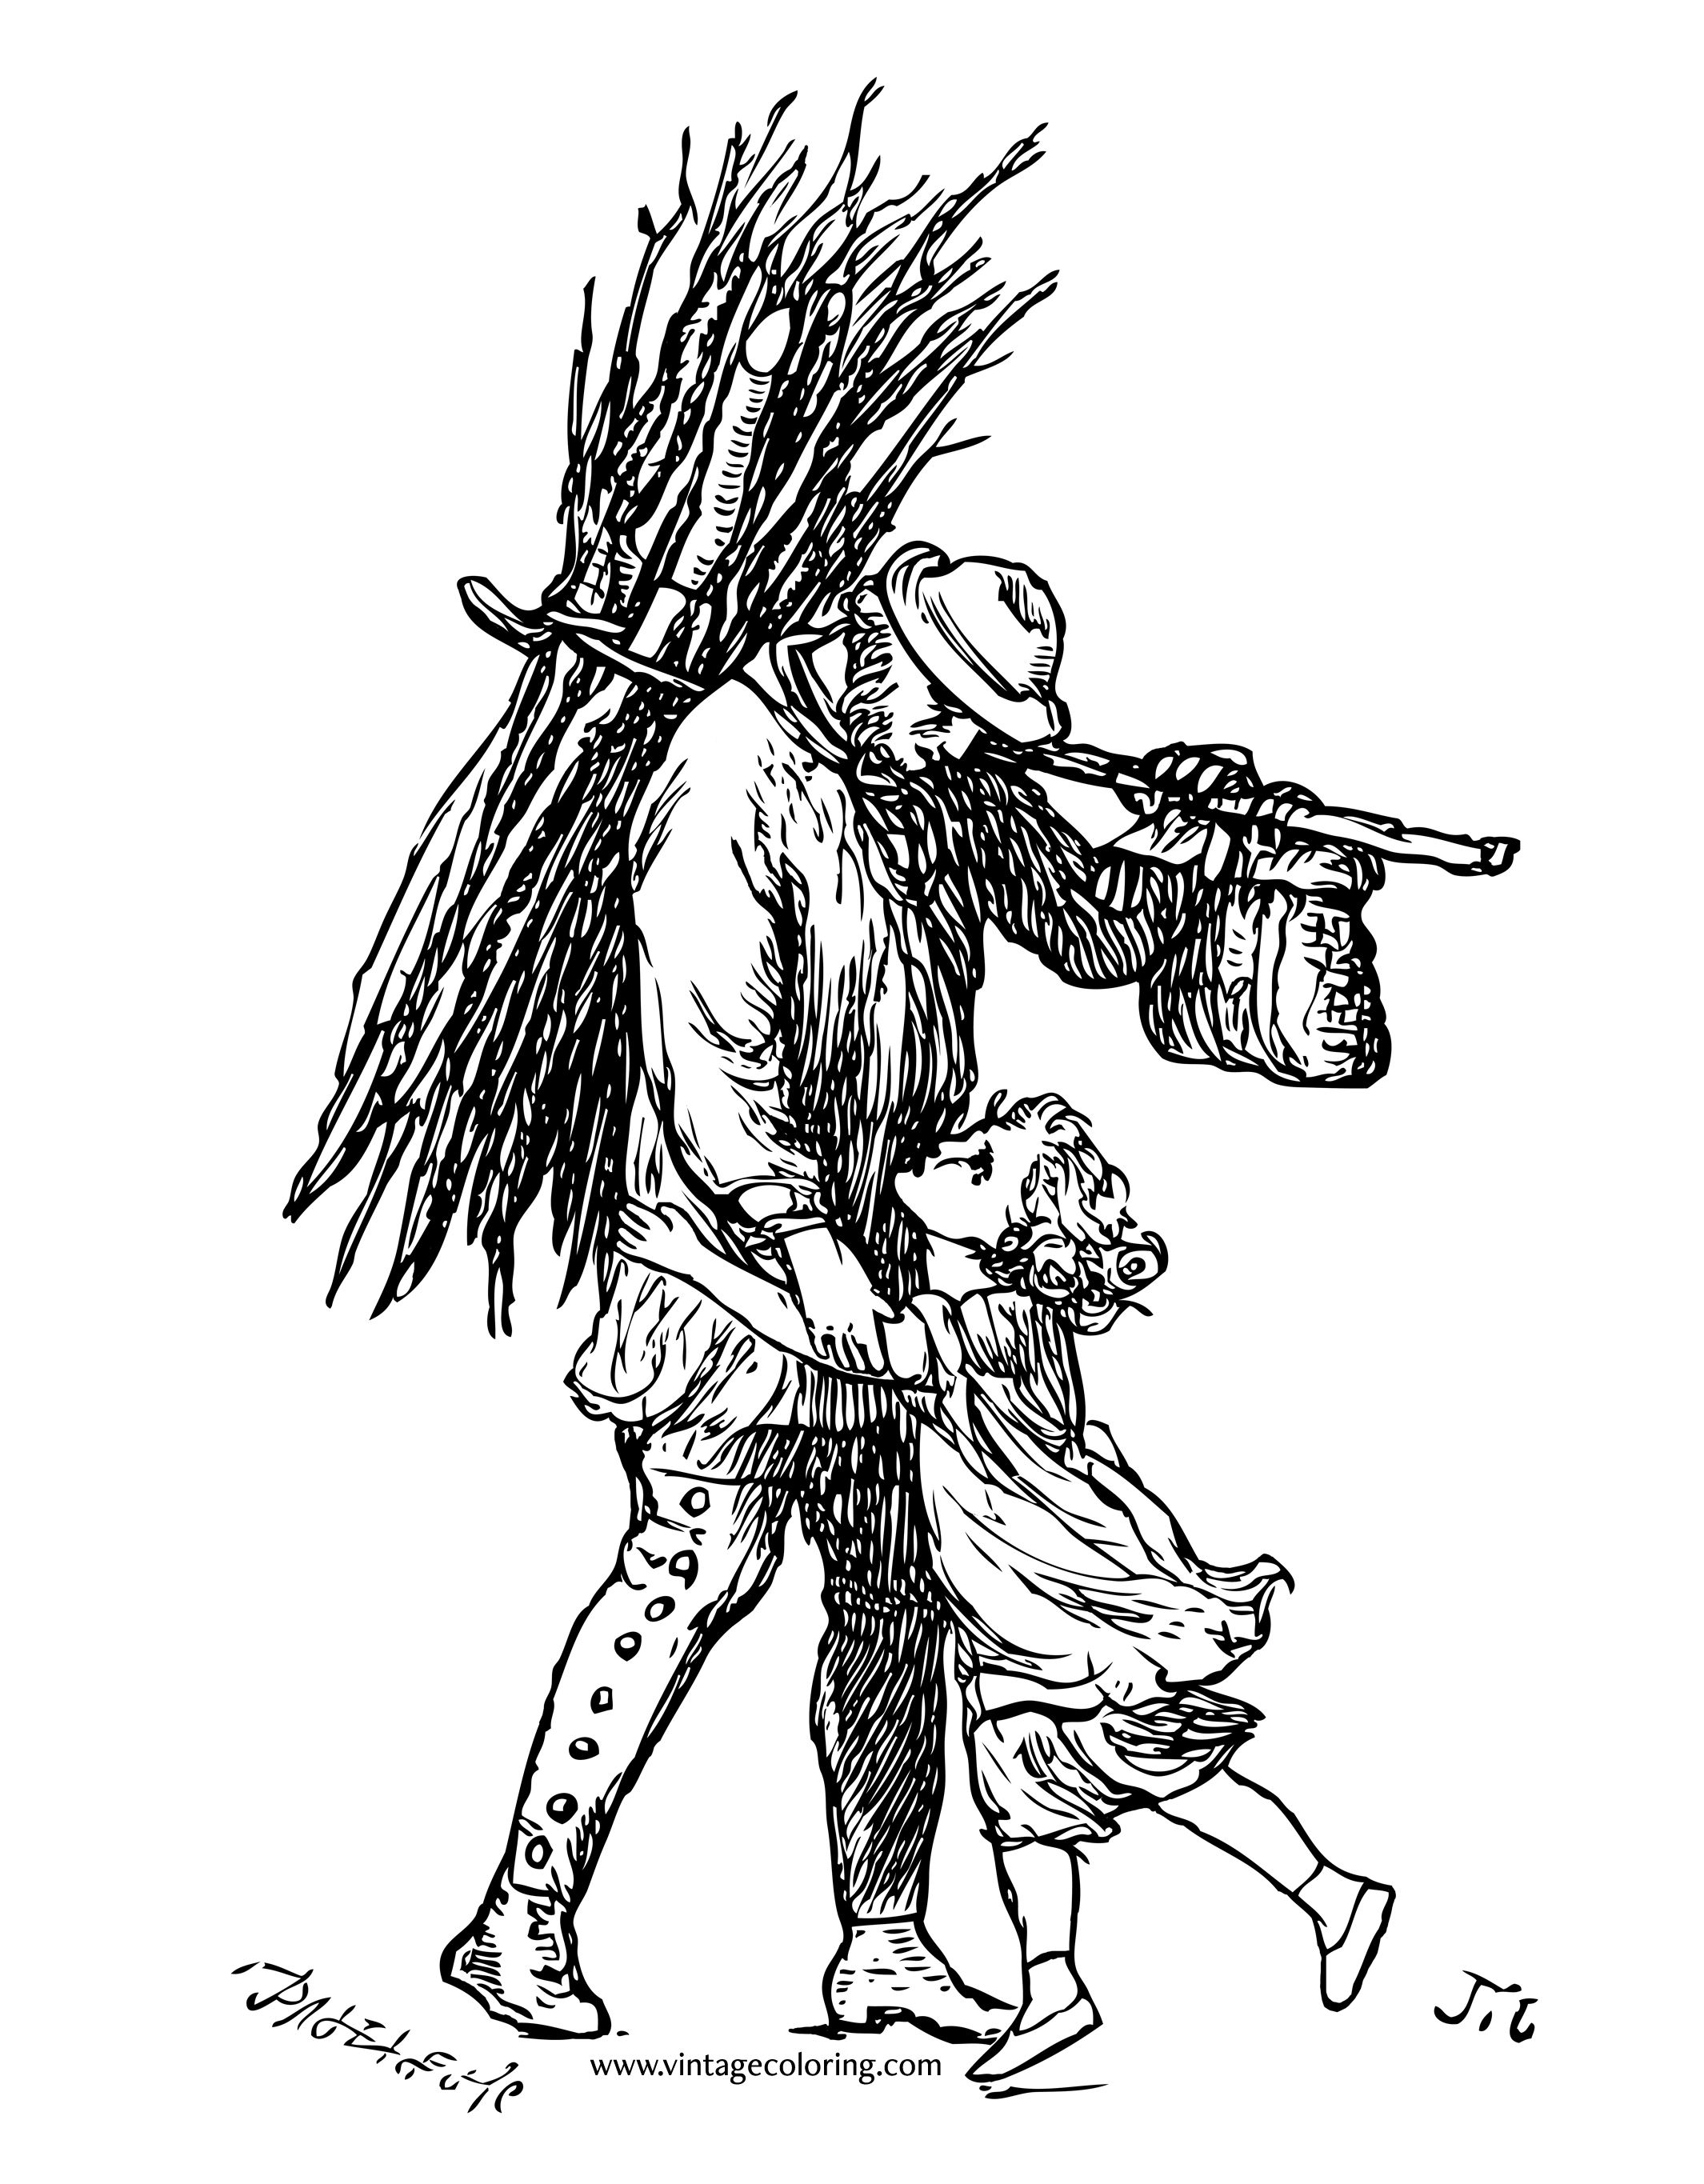 father and daughter coloring pages father and daughter a free vintage coloring page daughter pages and father coloring